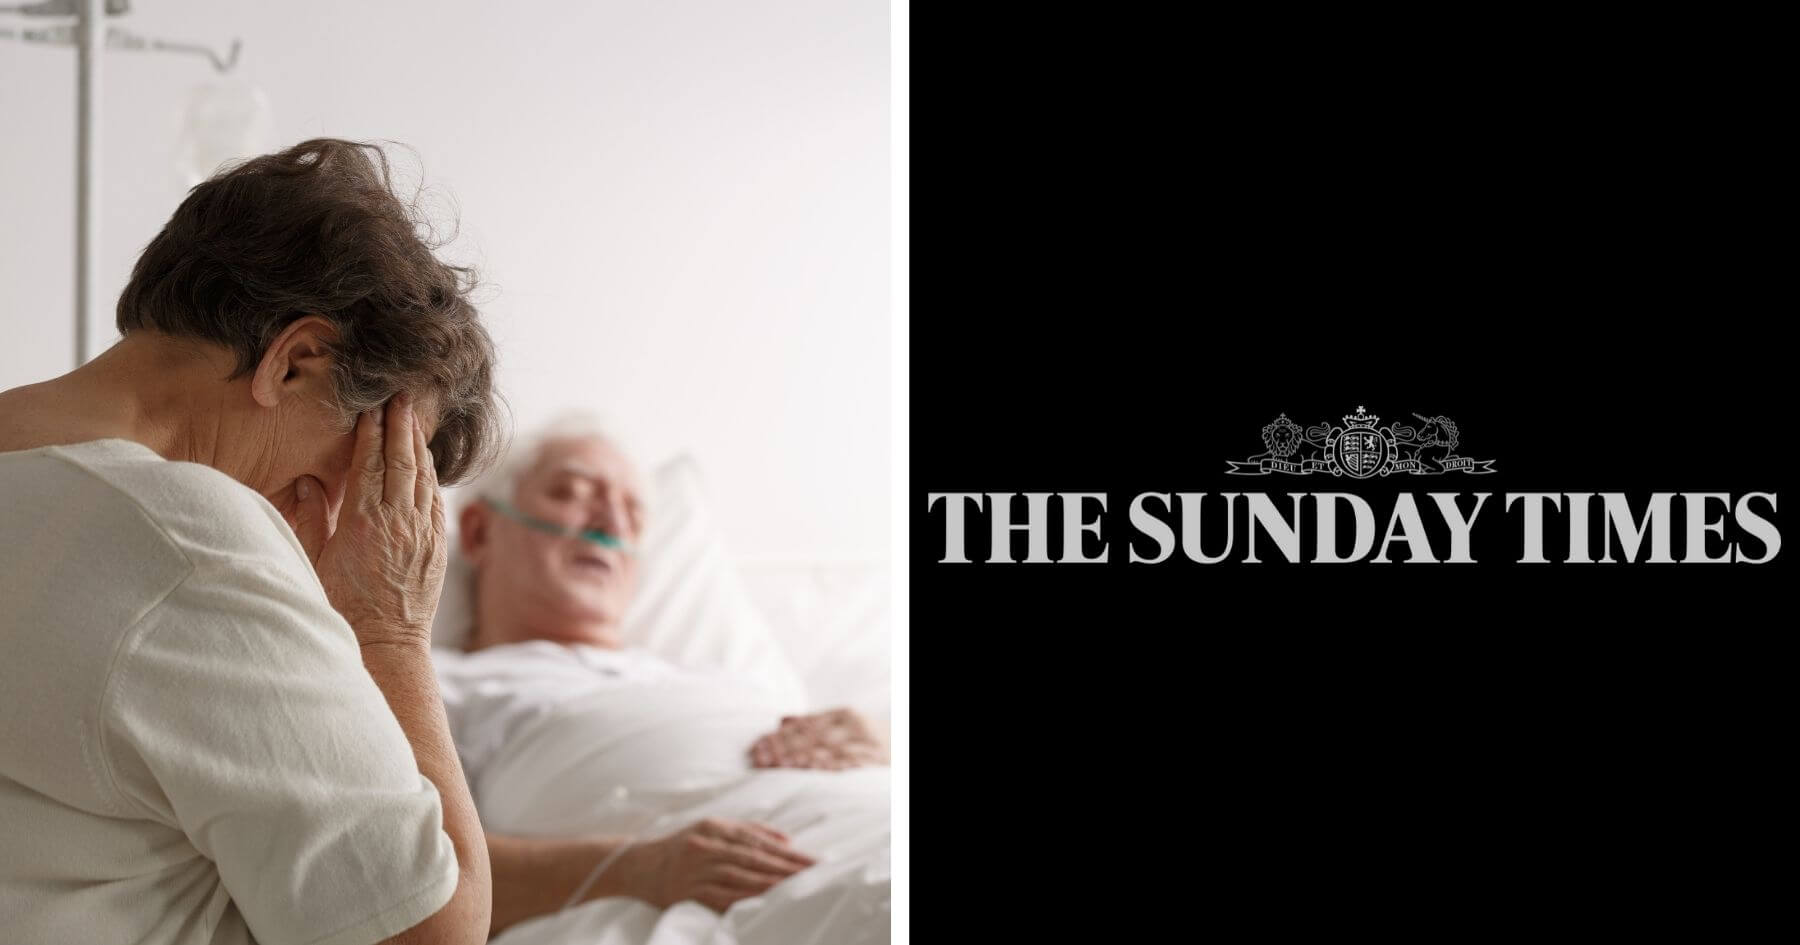 Sunday Times launch campaign to legalise assisted suicide